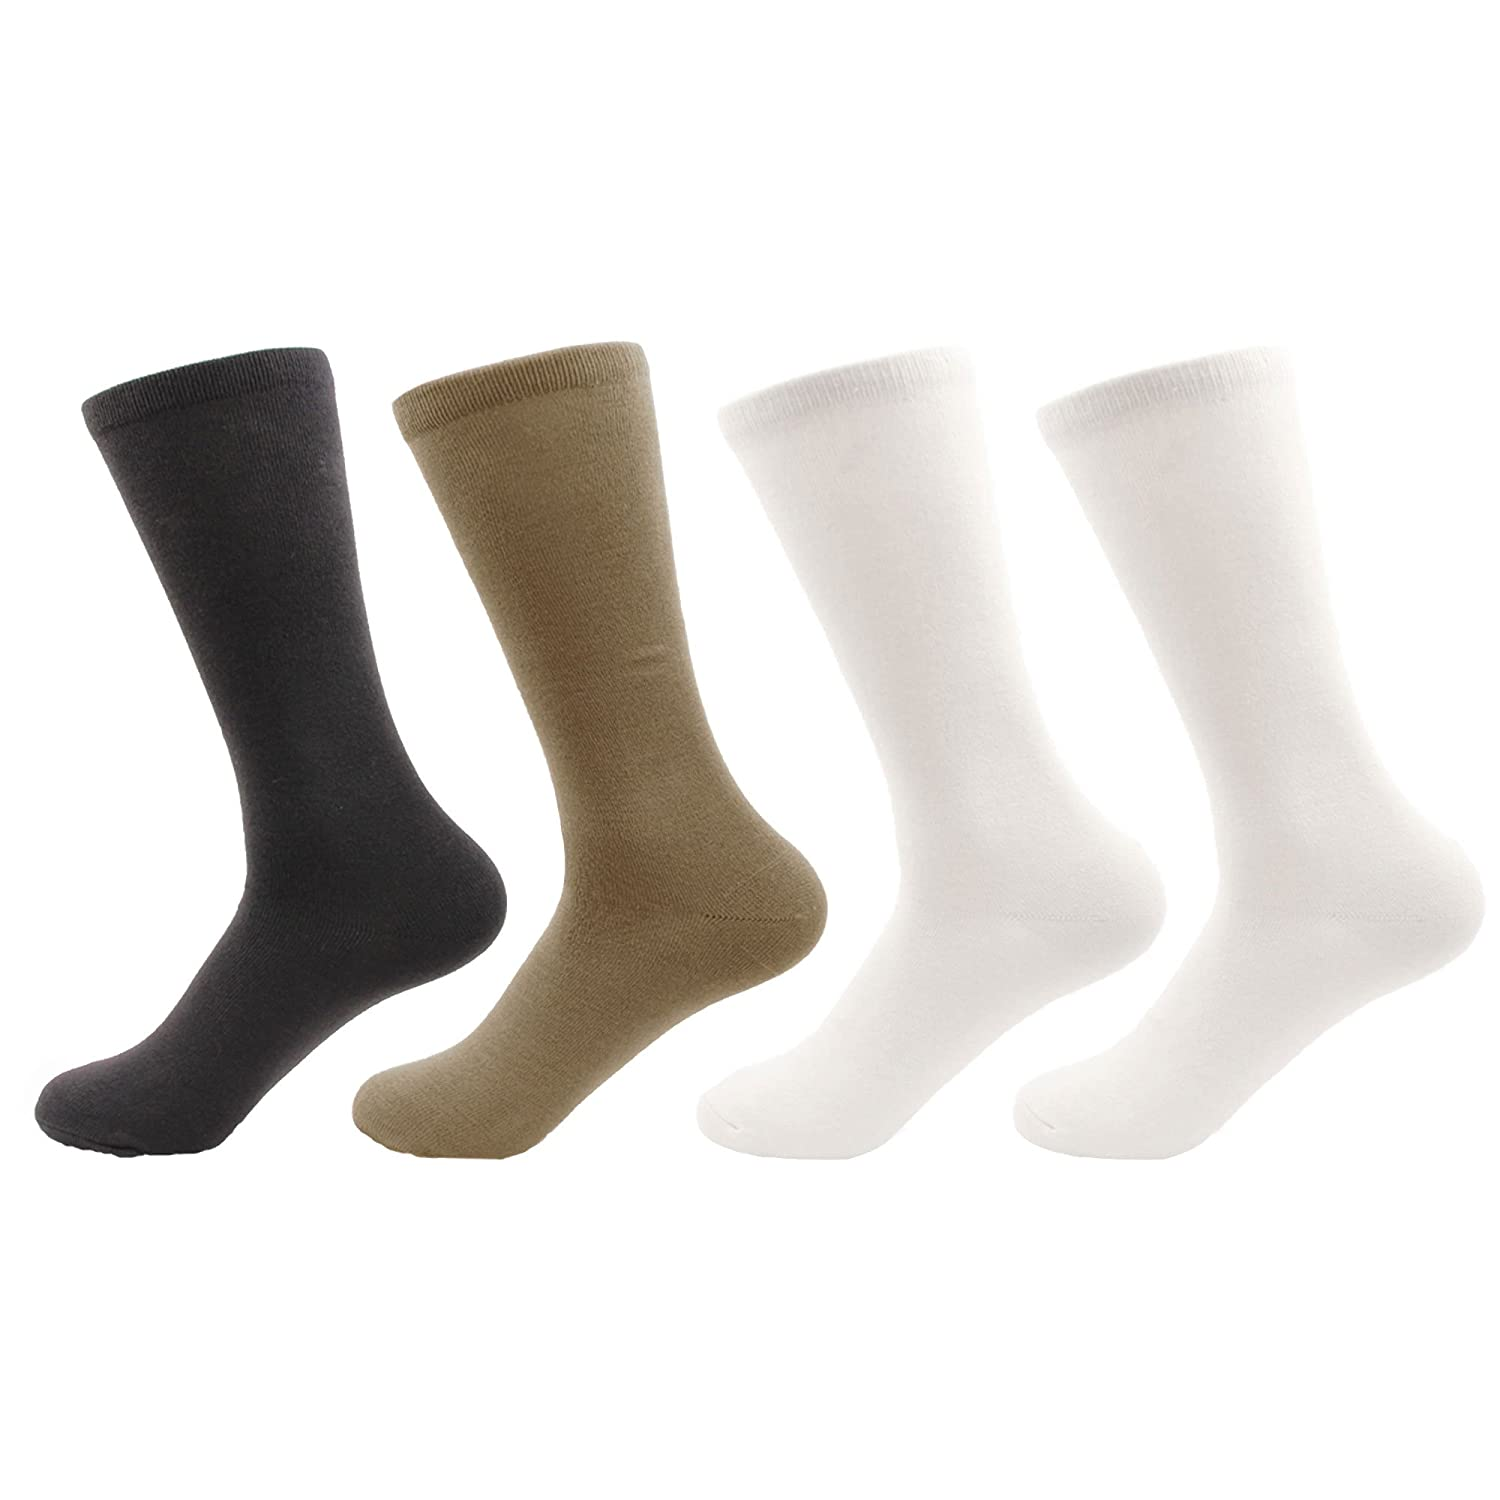 673a3e969b034 BambooMN Men's Rayon from Bamboo Fiber Moisture Wicking Luxury  Antibacterial Casual Dress Mid-Calf Socks - Black - 8prs, Size 6-10 at  Amazon Men's Clothing ...